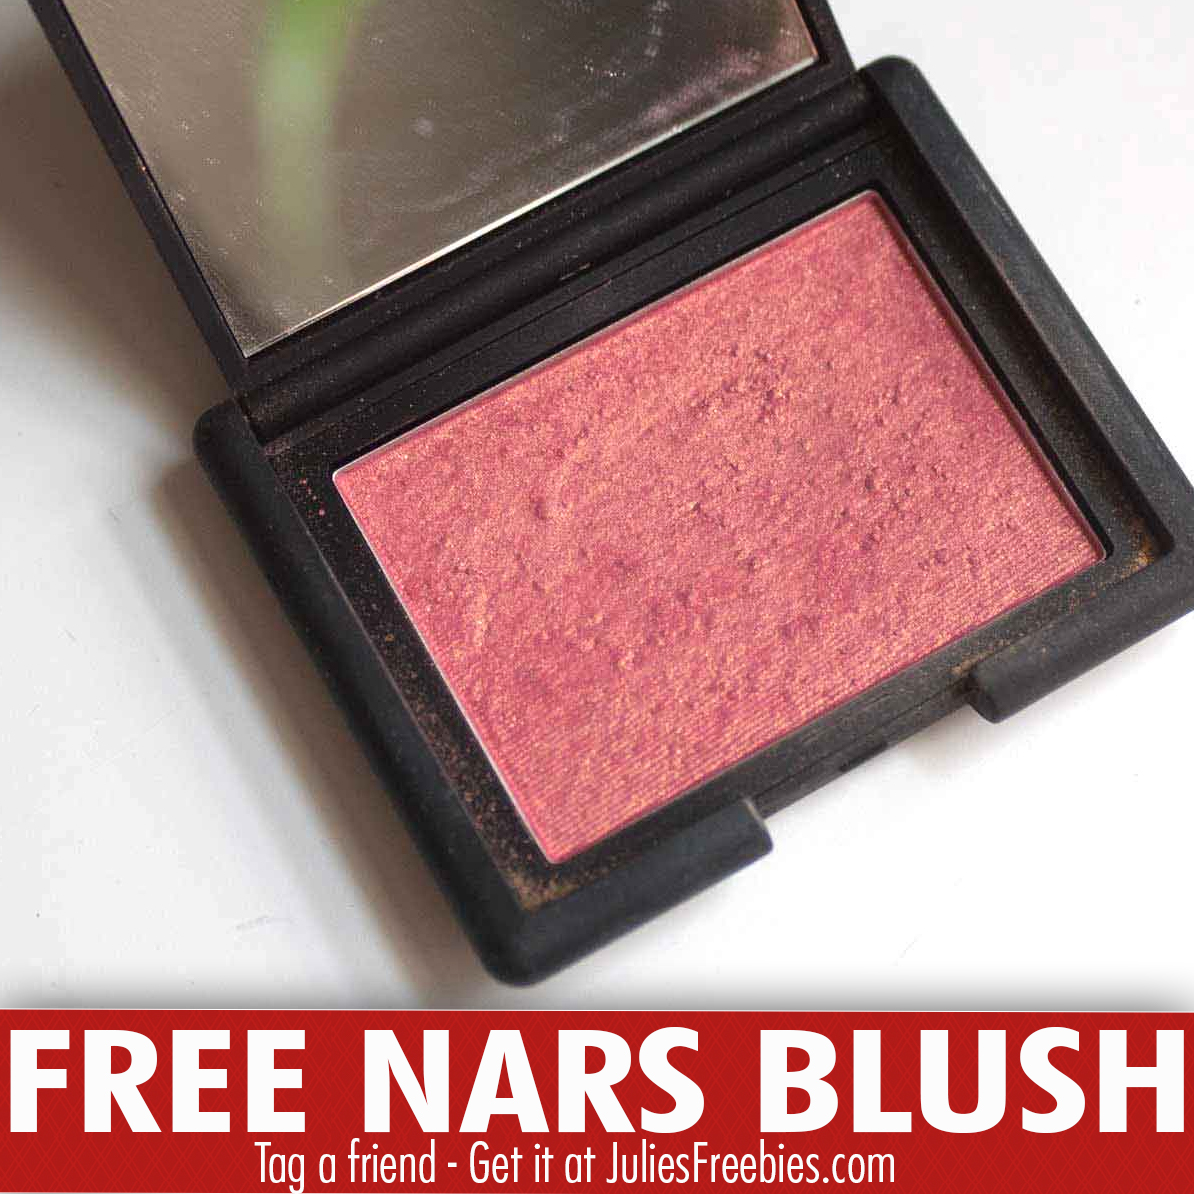 Here Is An Offer Where You Can Sign Up For The Ulta Ultamate Rewards Program And Snag A FREE Nars Orgasm Blush If Your Birthday In April Or